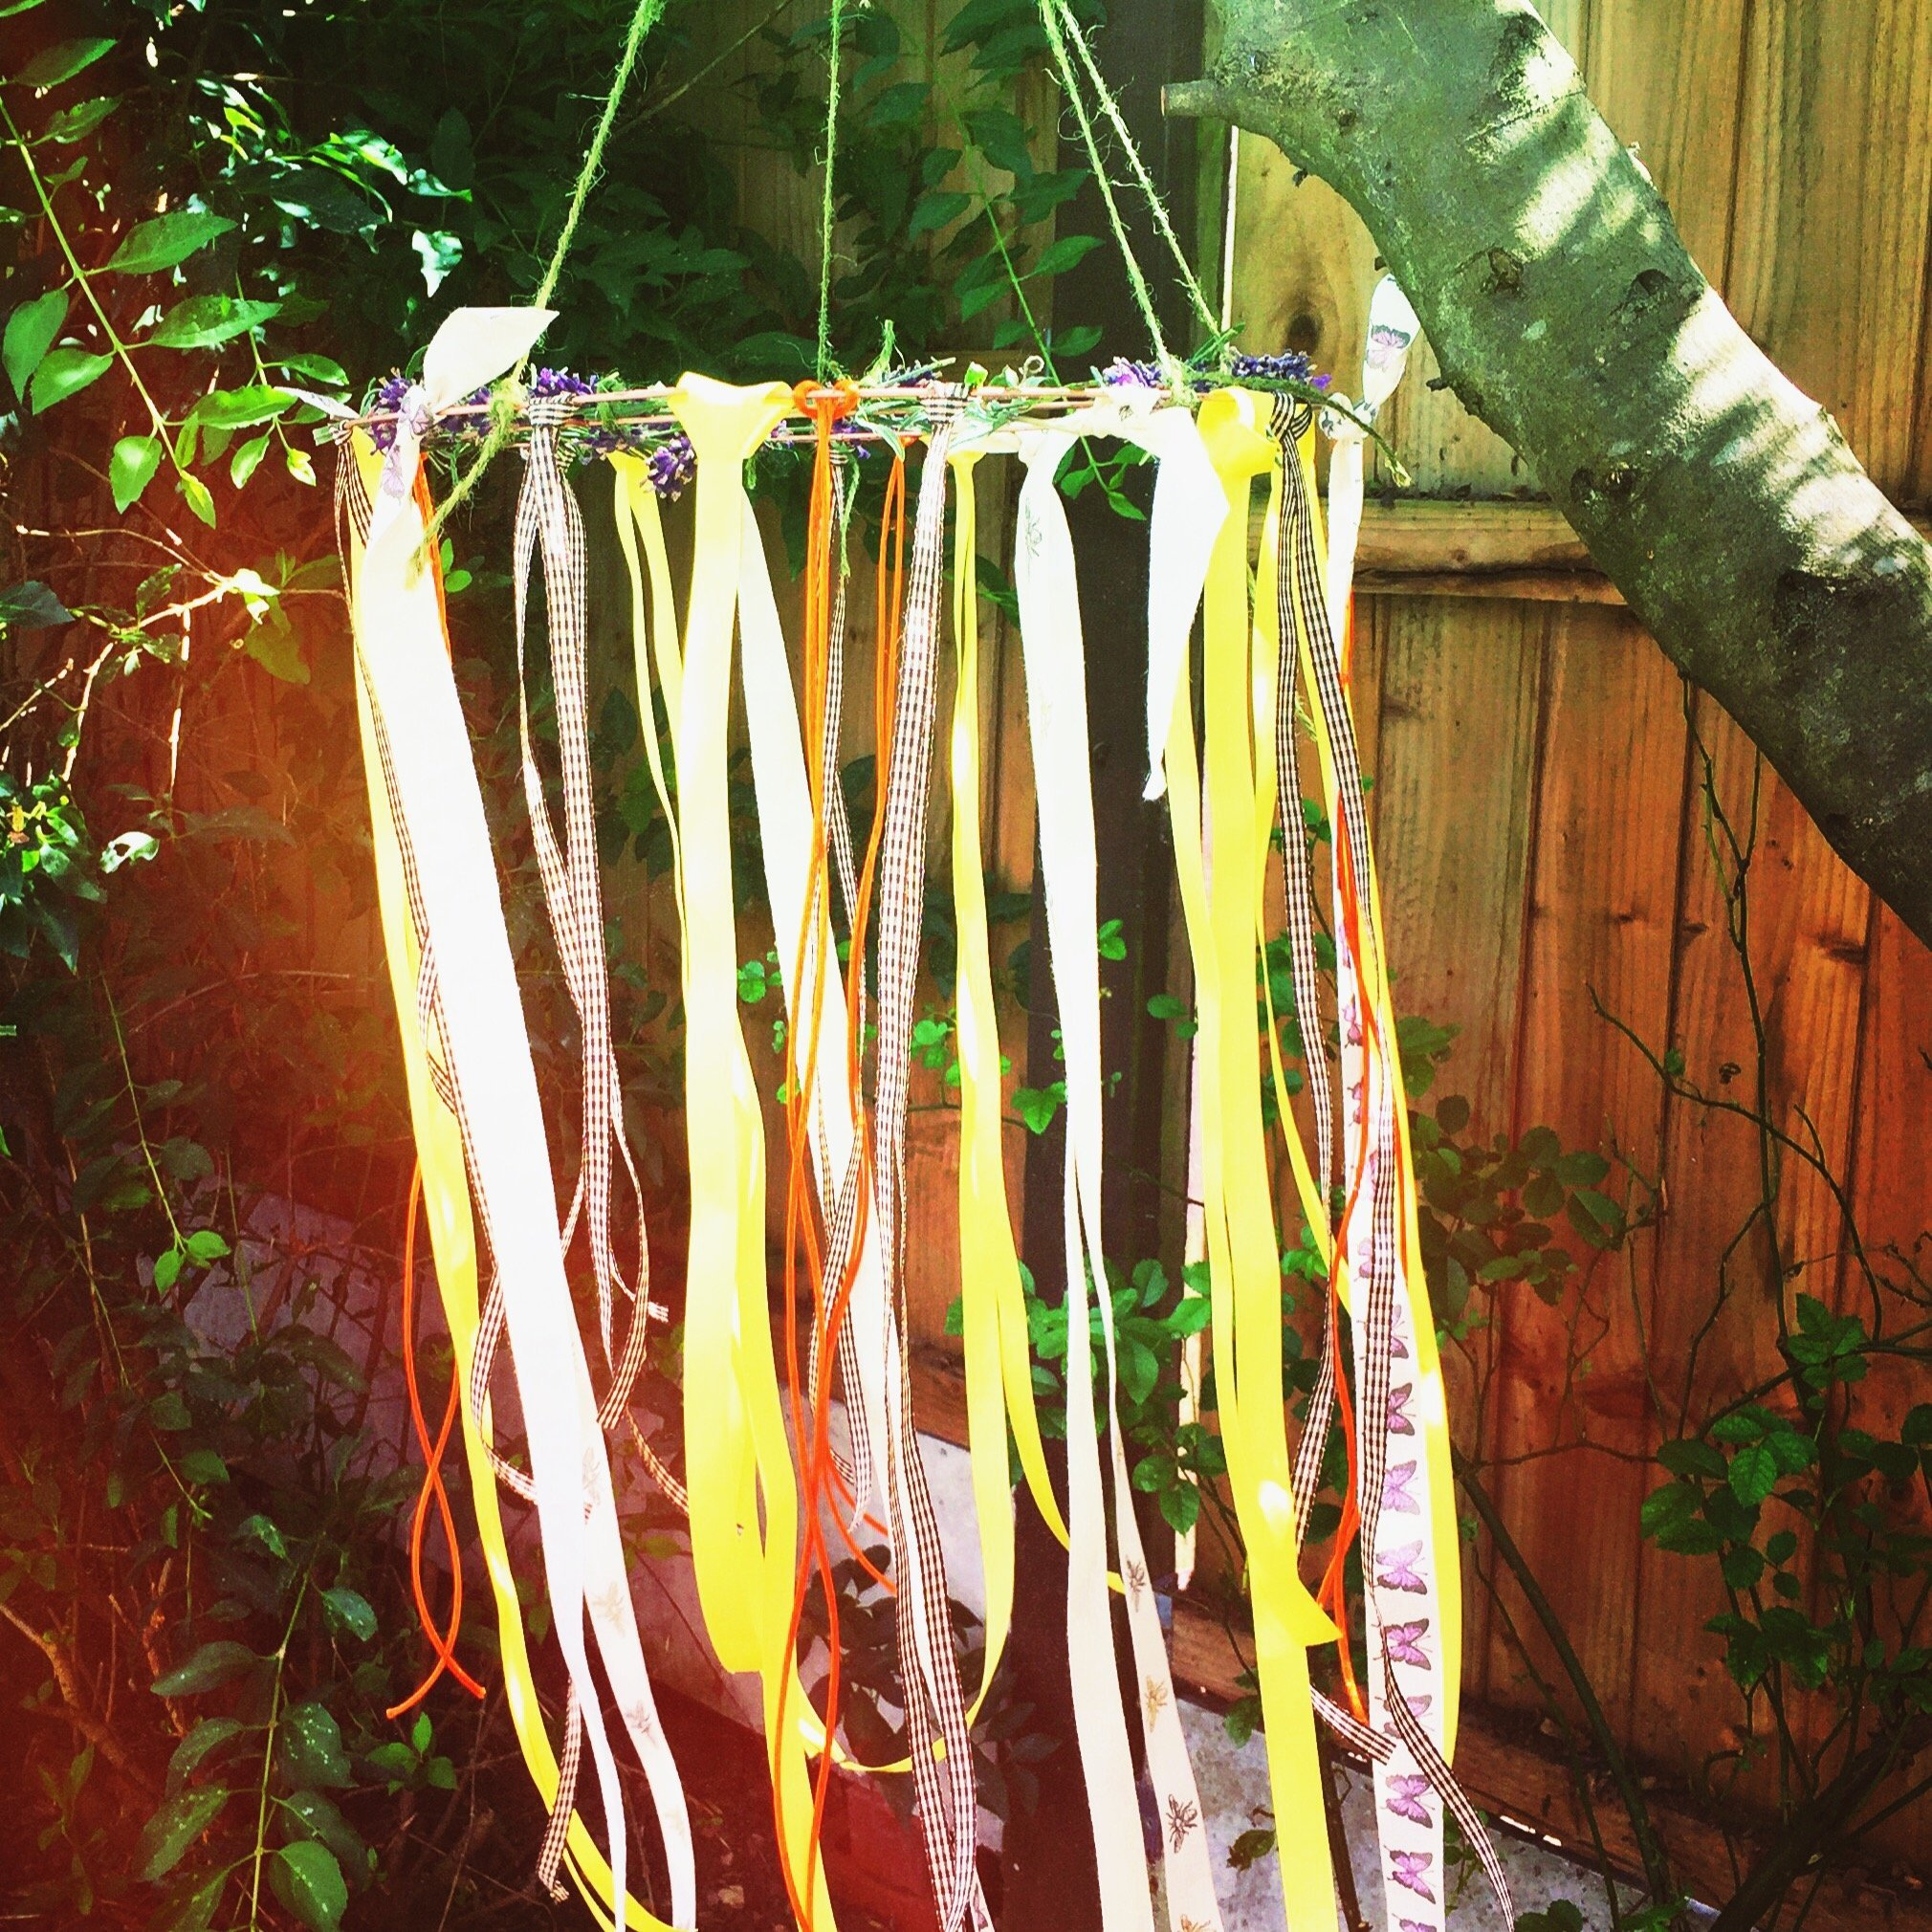 kids craft wind catcher with lavender and ribbons hanging from a tree in the garden